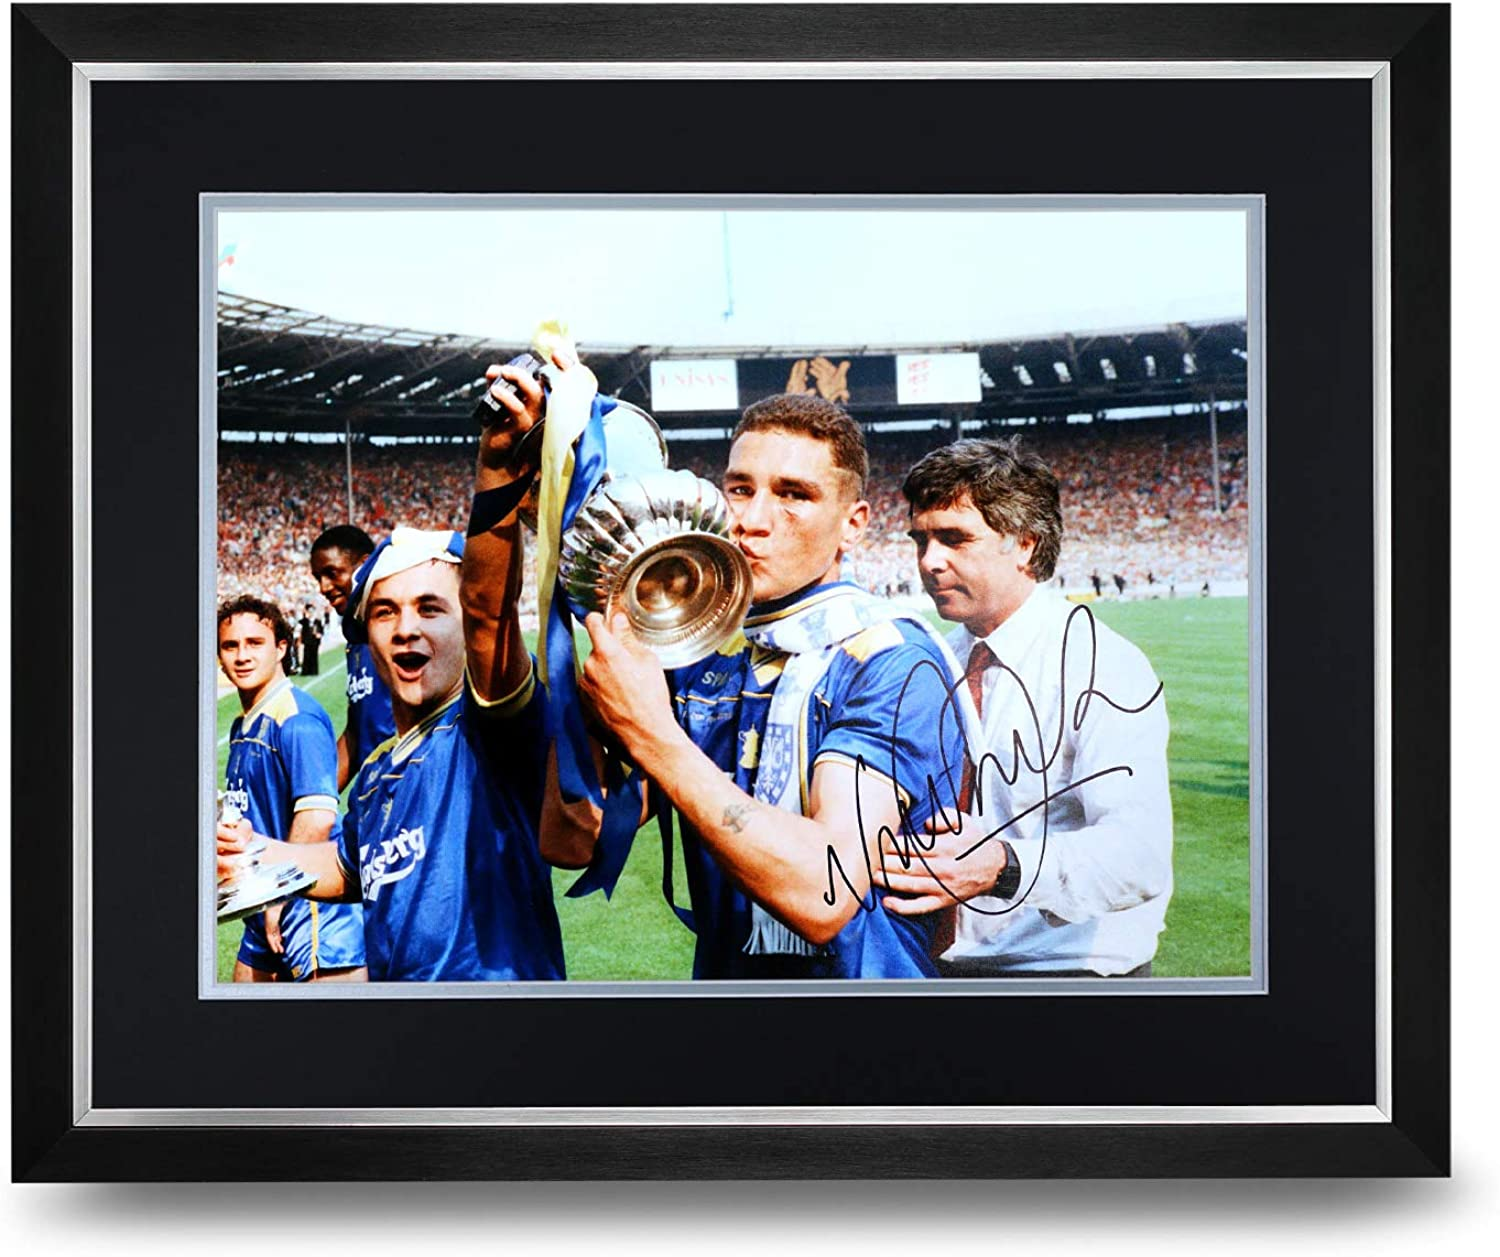 Vinnie Jones Signed Photo Large Framed Wimbledon Display Autograph Memorabilia